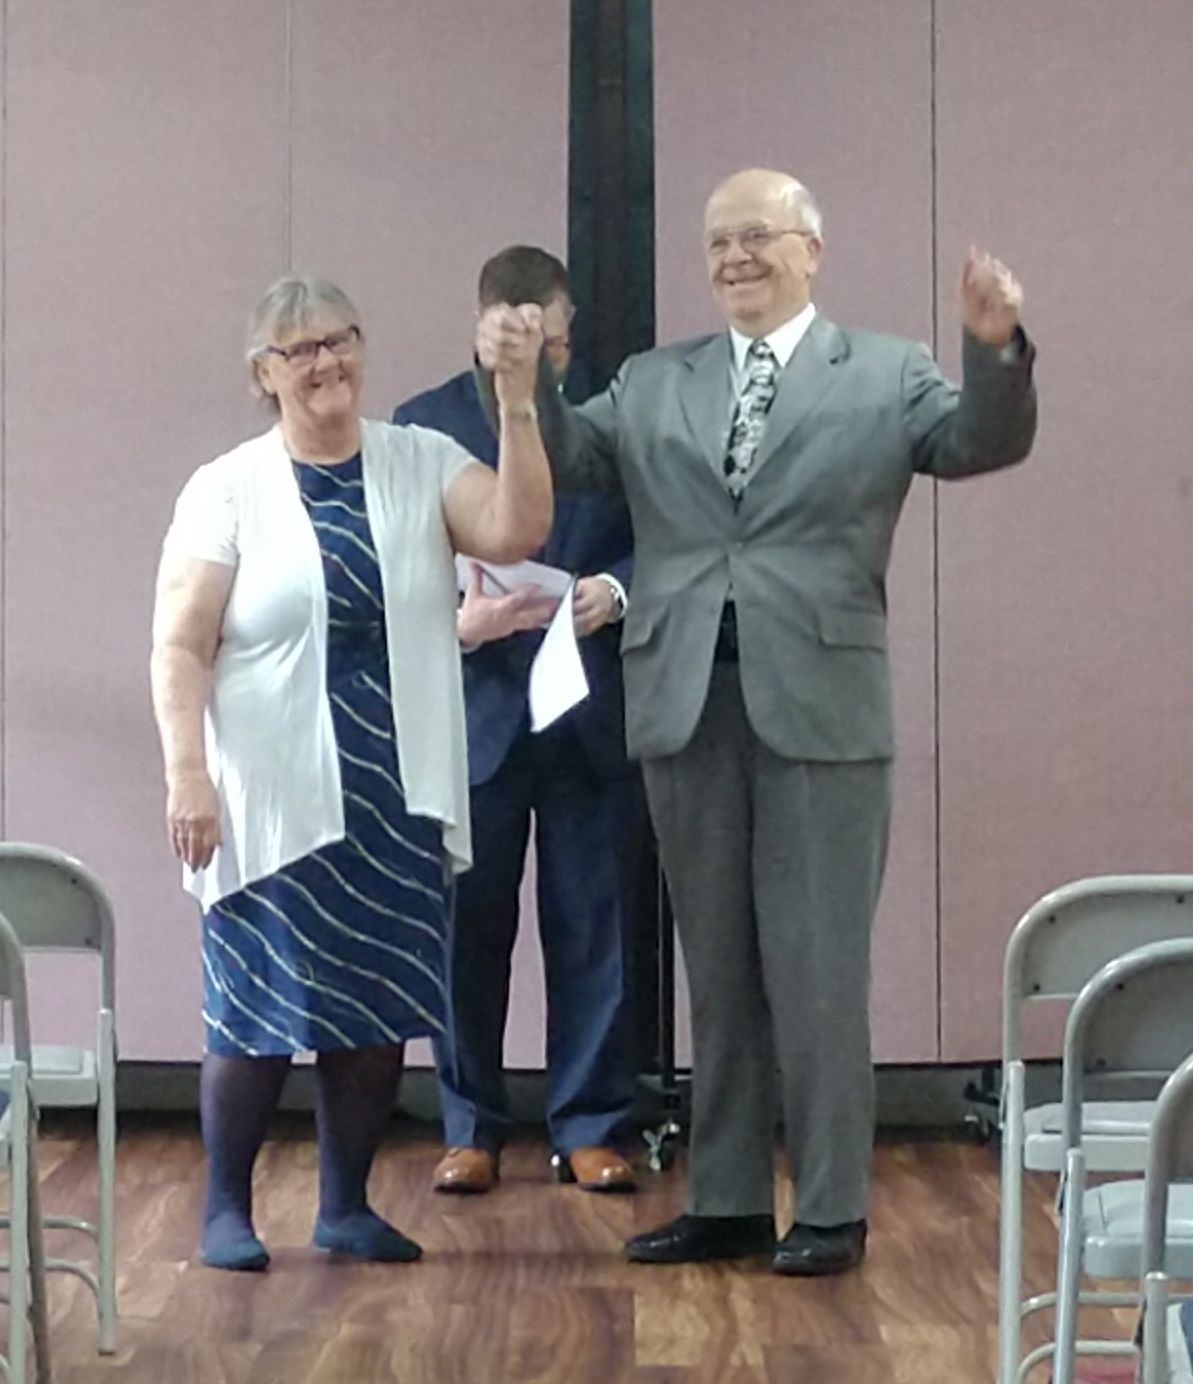 ex-single Christians raise their hands triumphantly after marrying